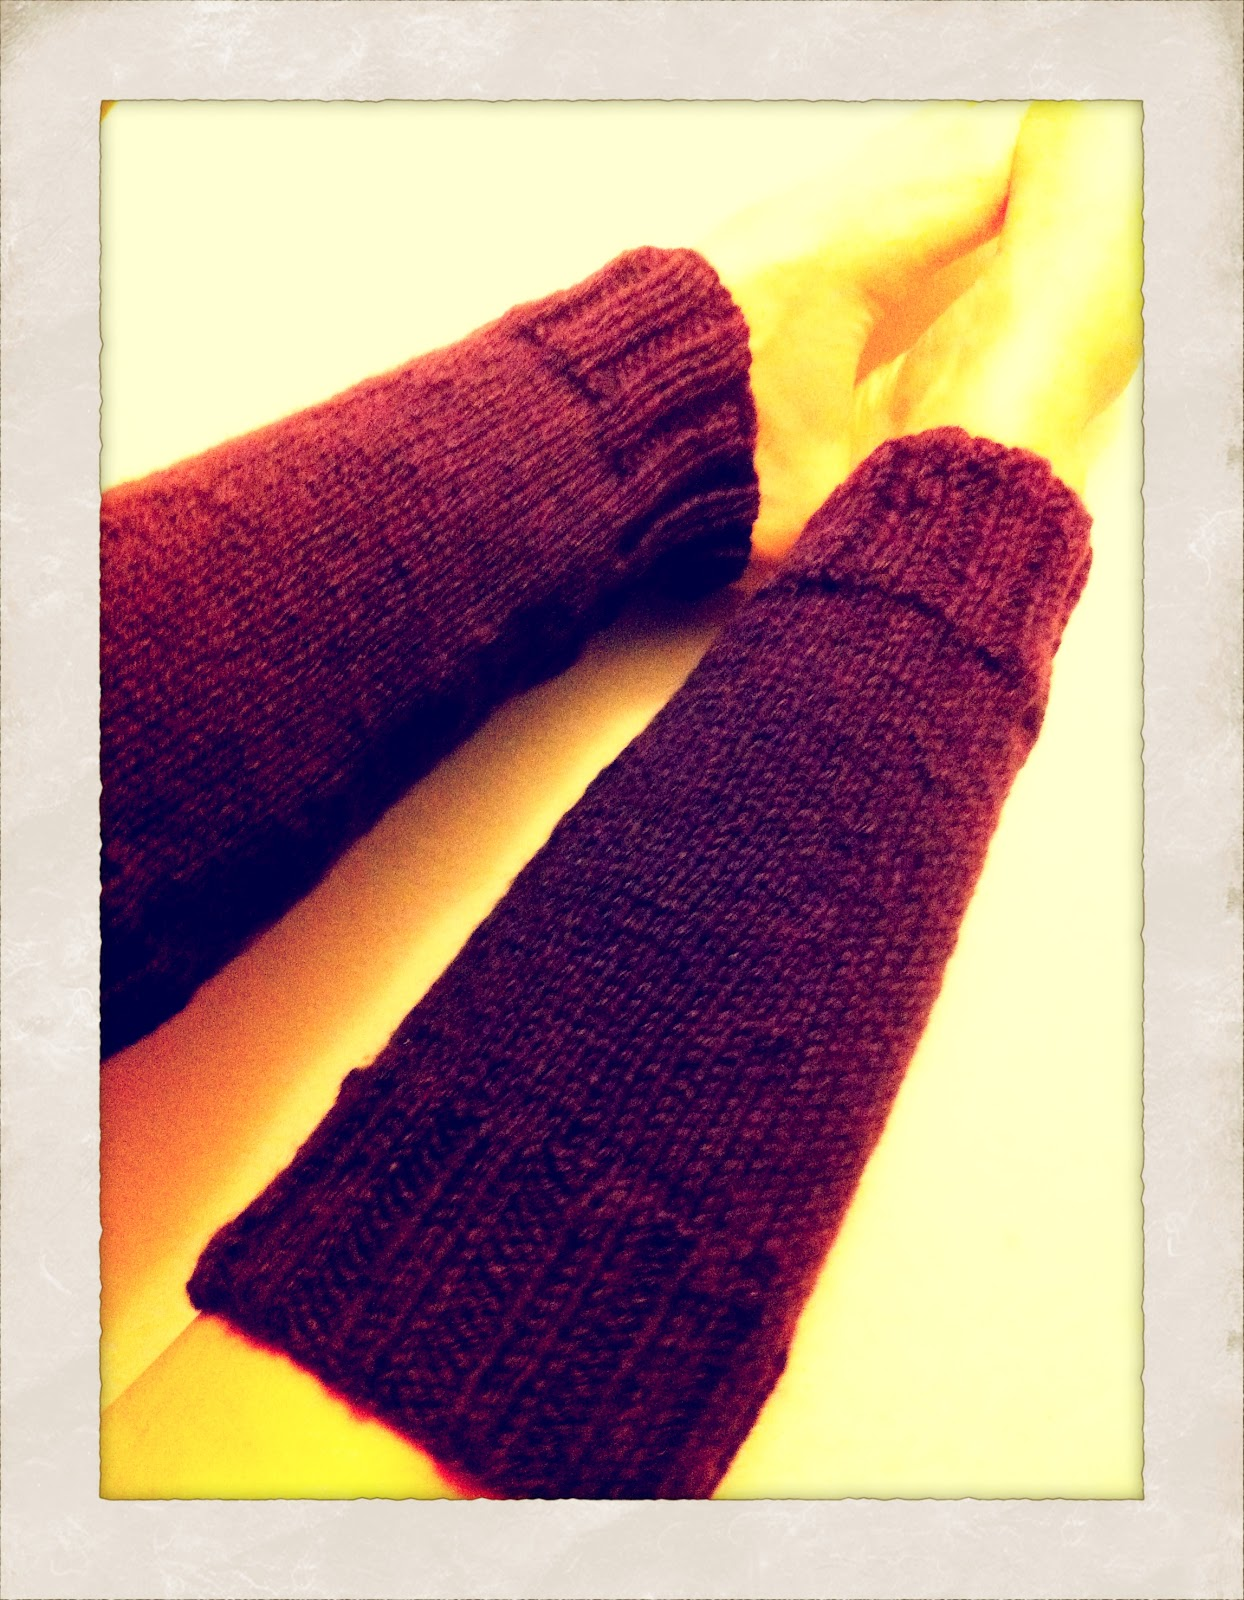 Knitting Leg Warmers Pattern : Civic Stitchings: My first knitting pattern... drumroll.... leg warmers!